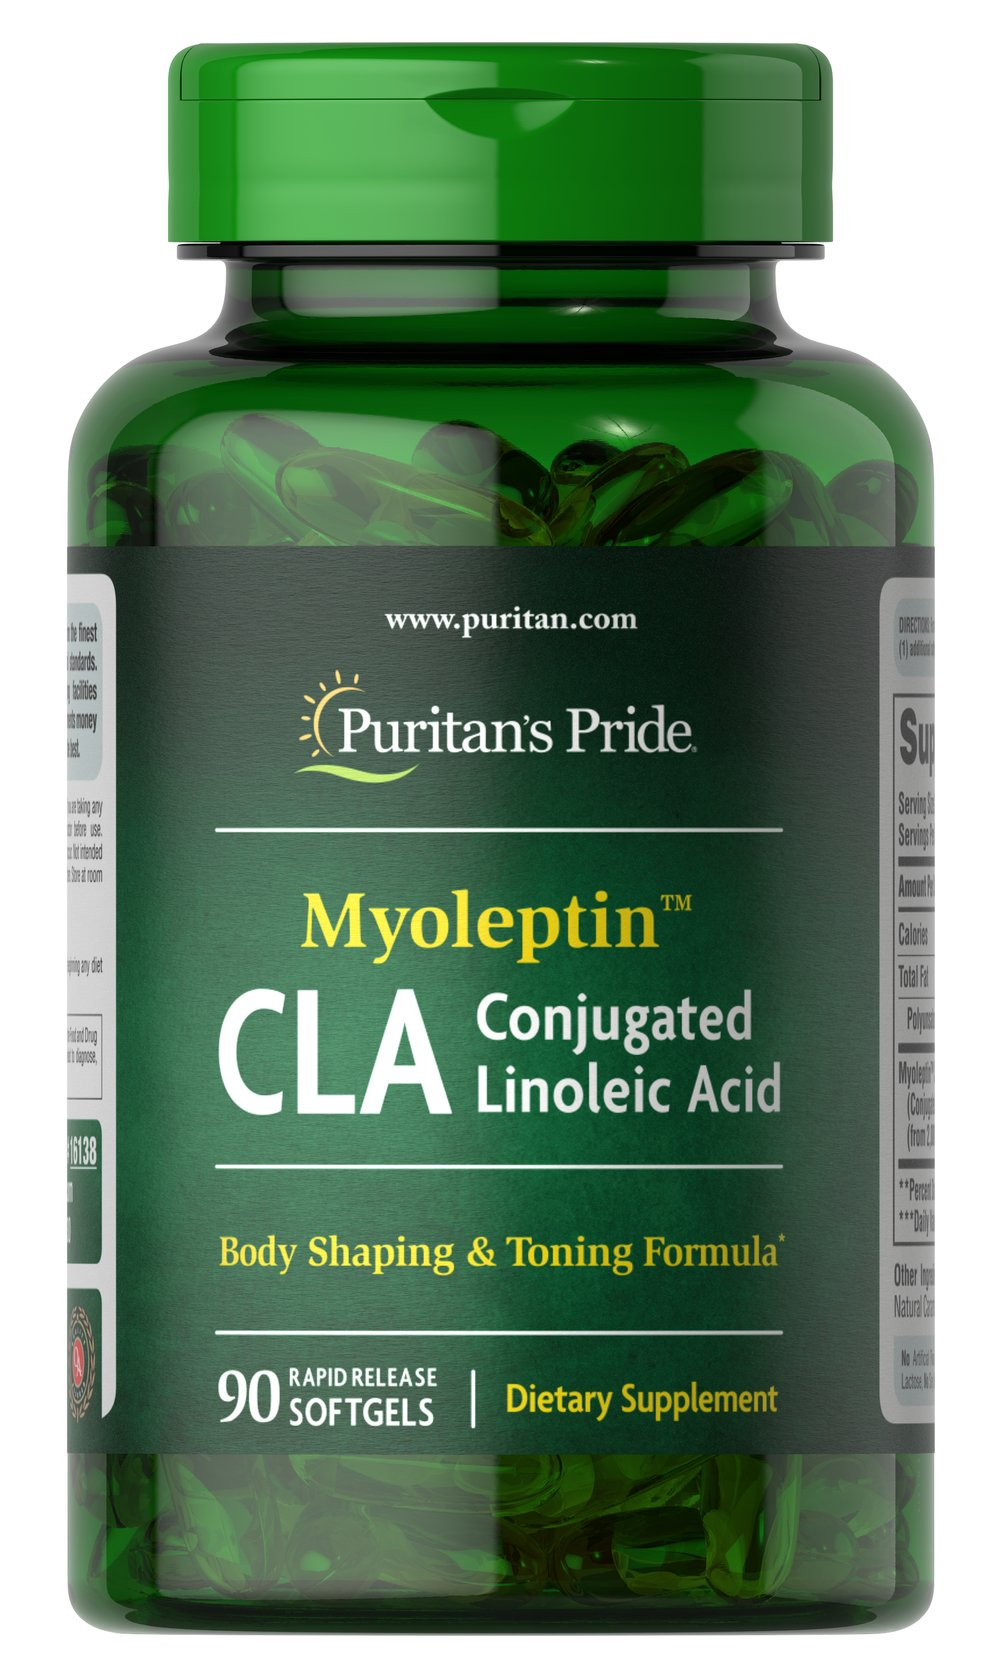 Myo-Leptin™ CLA 1000 mg <p>CLA (Conjugated Linoleic Acid) supports a healthy body composition**</p><p>Derived from Safflower Oil, CLA supports your dieting goals**</p><p>Rapid Release softgels are formulated for quick release into your system</p><p>Use with a reduced calorie diet and daily exercise program</p> 90 Softgels 1000 mg $20.99